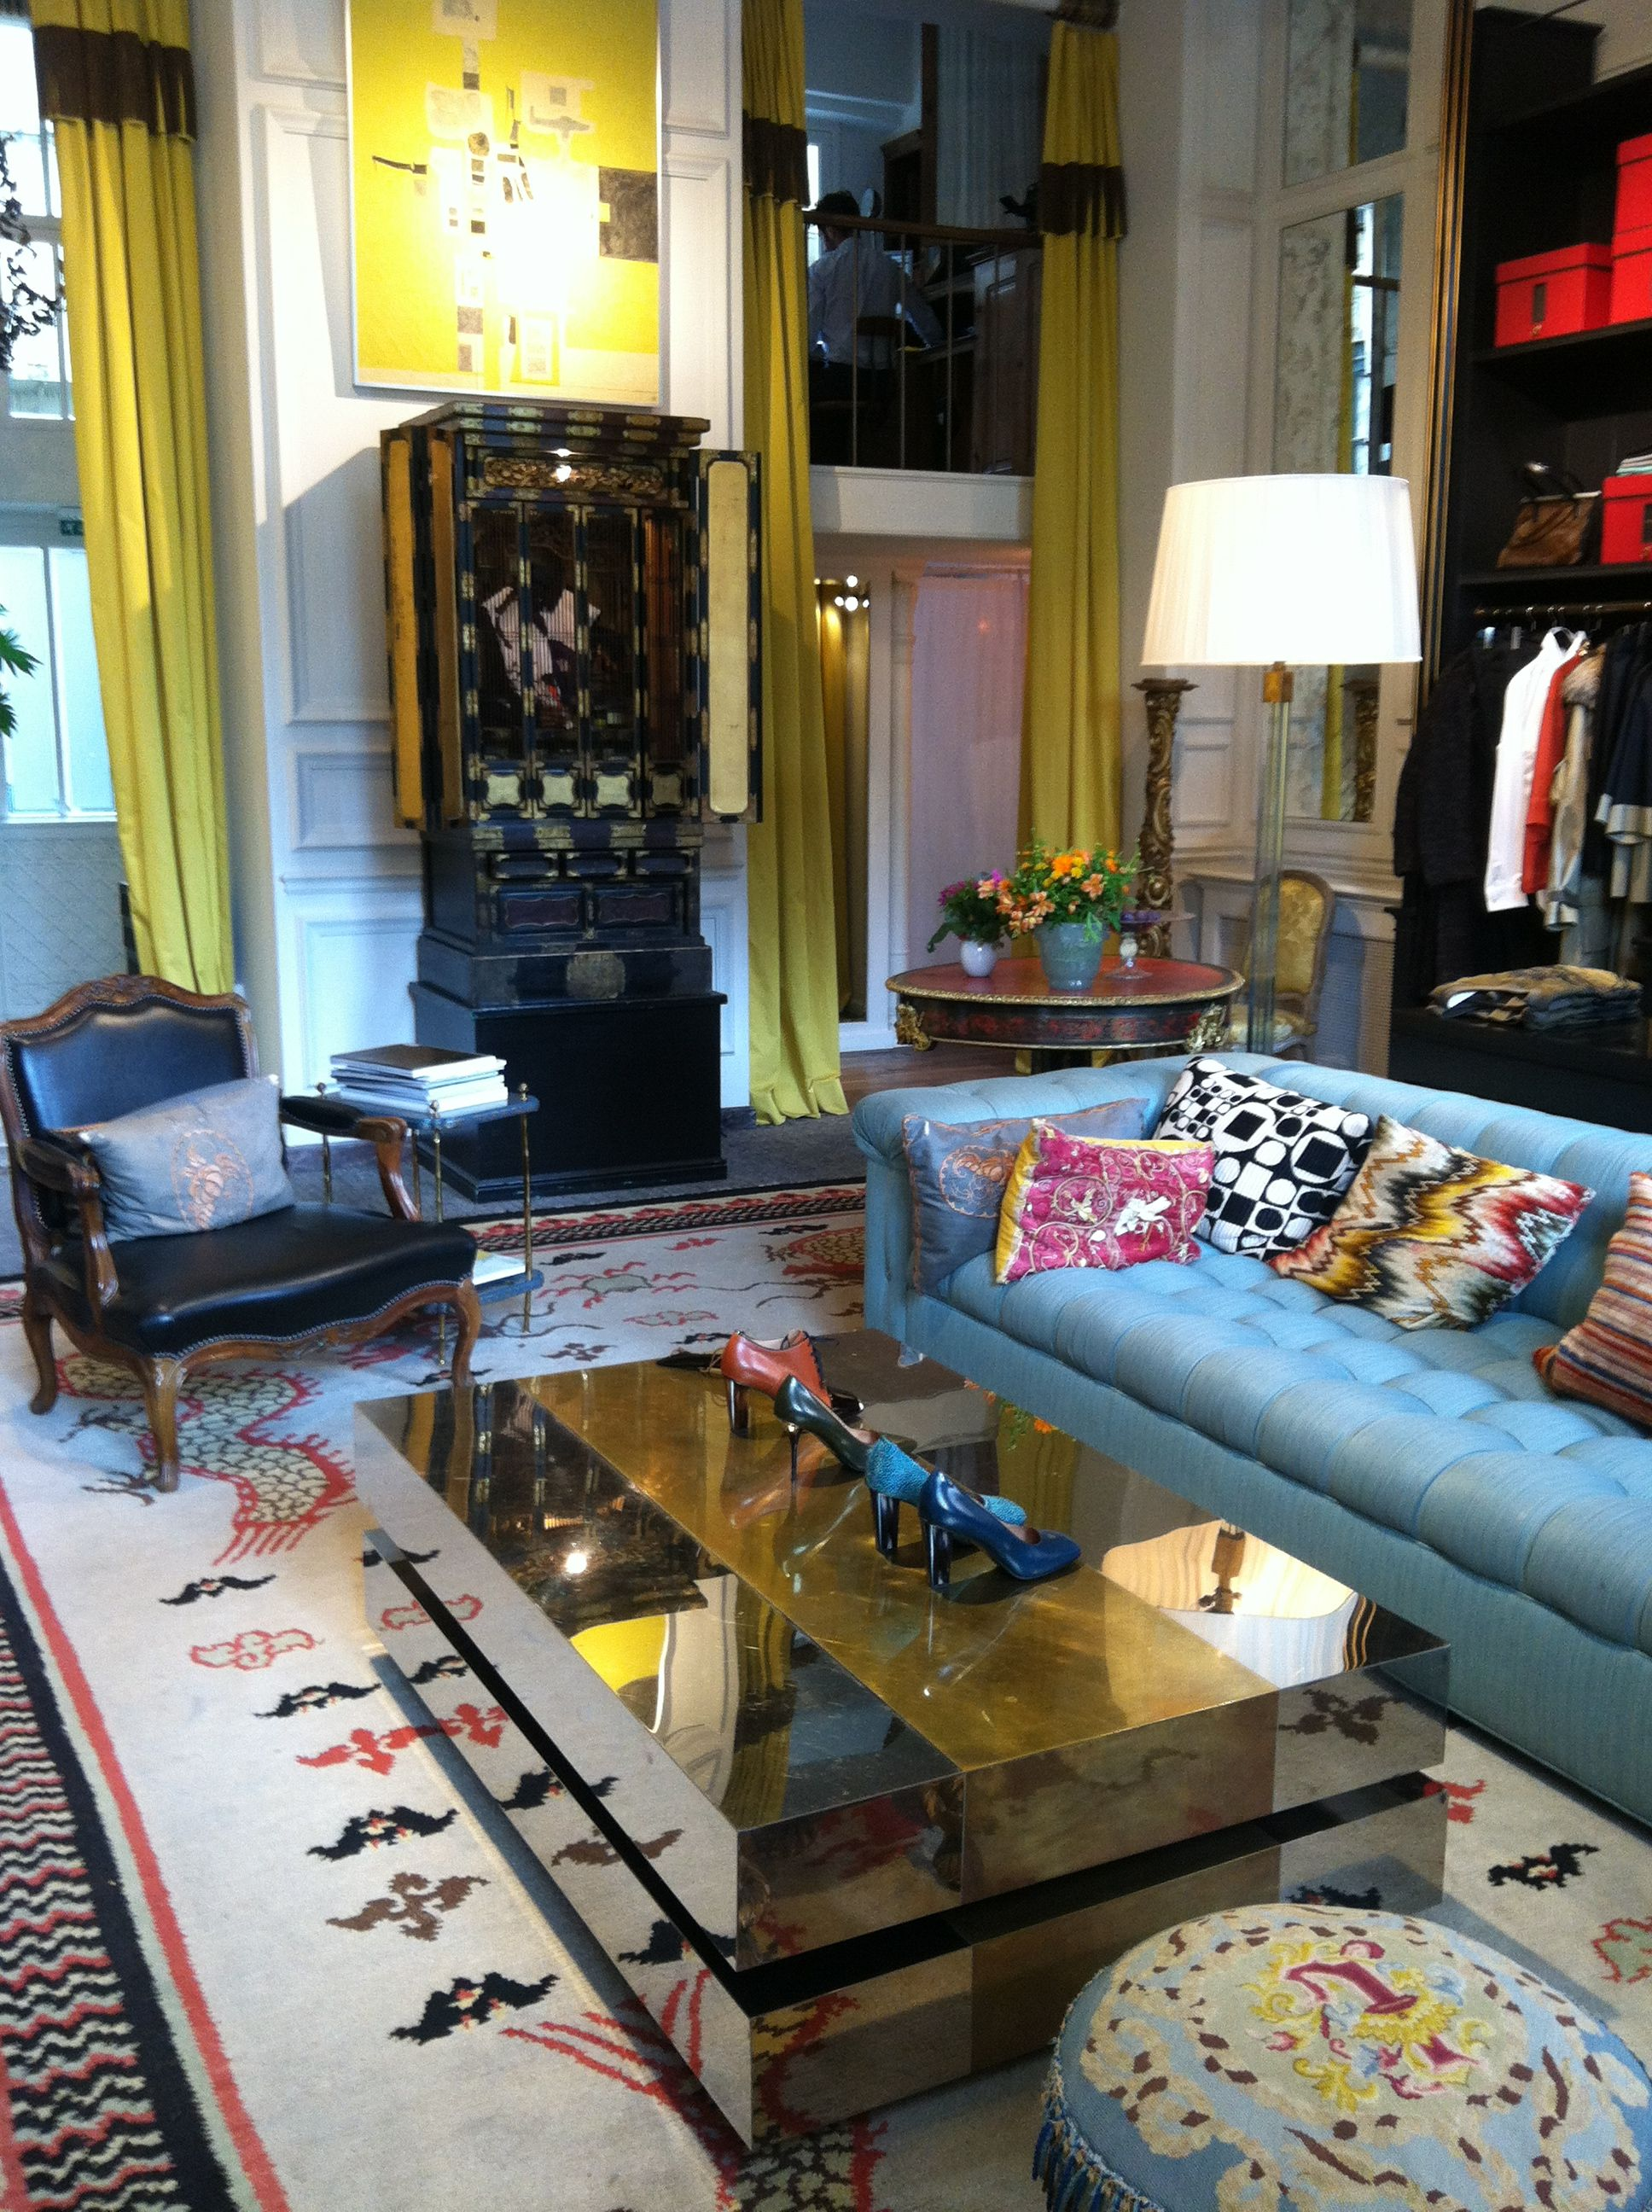 My favorite shop in the world exquisite interior dries van noten paris